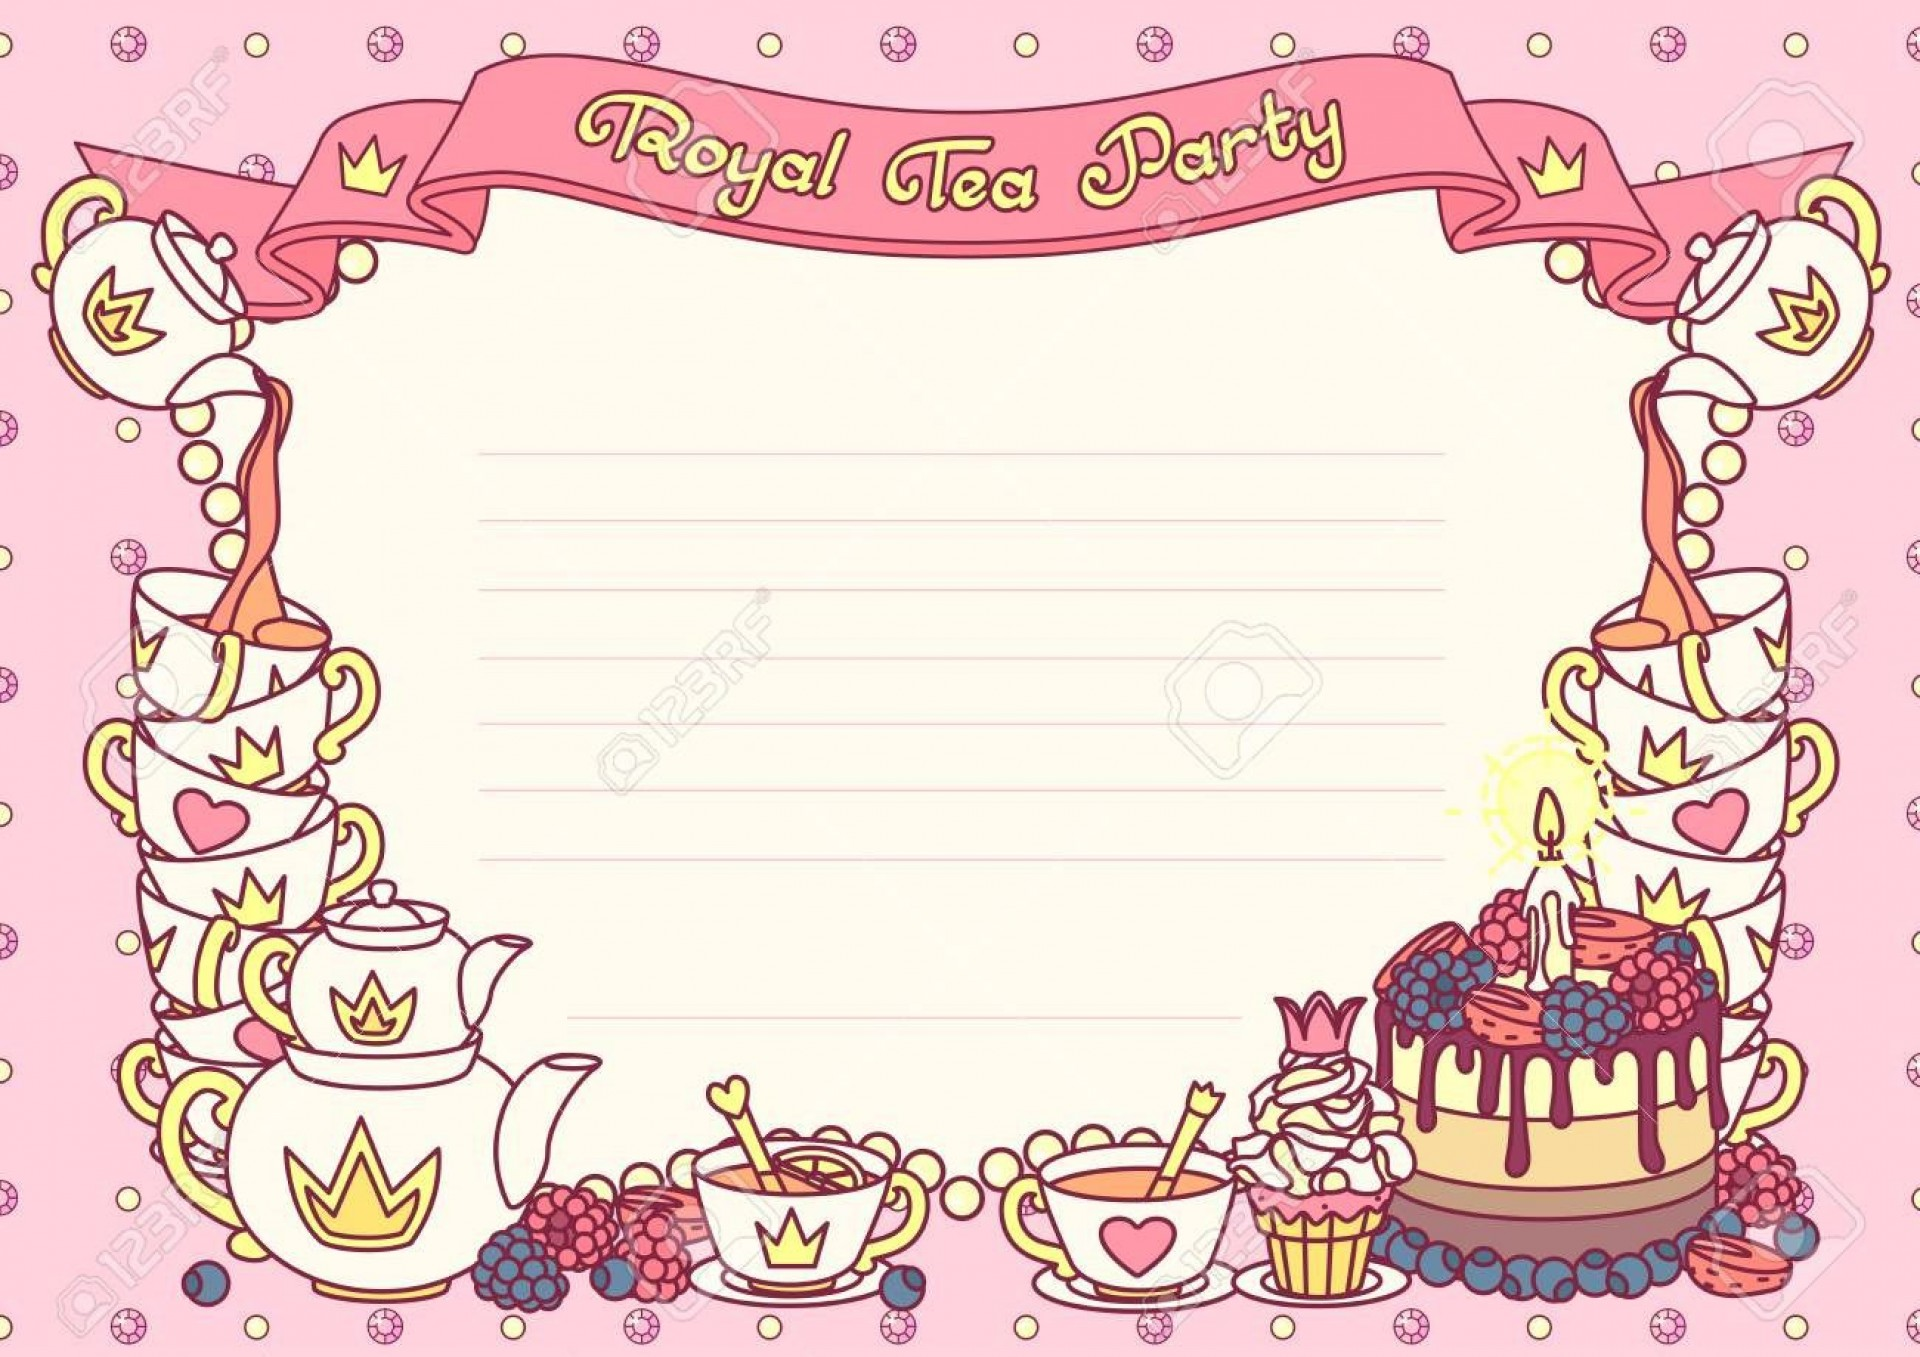 005 Rare Tea Party Invitation Template Image  Wording Vintage Free Sample1920